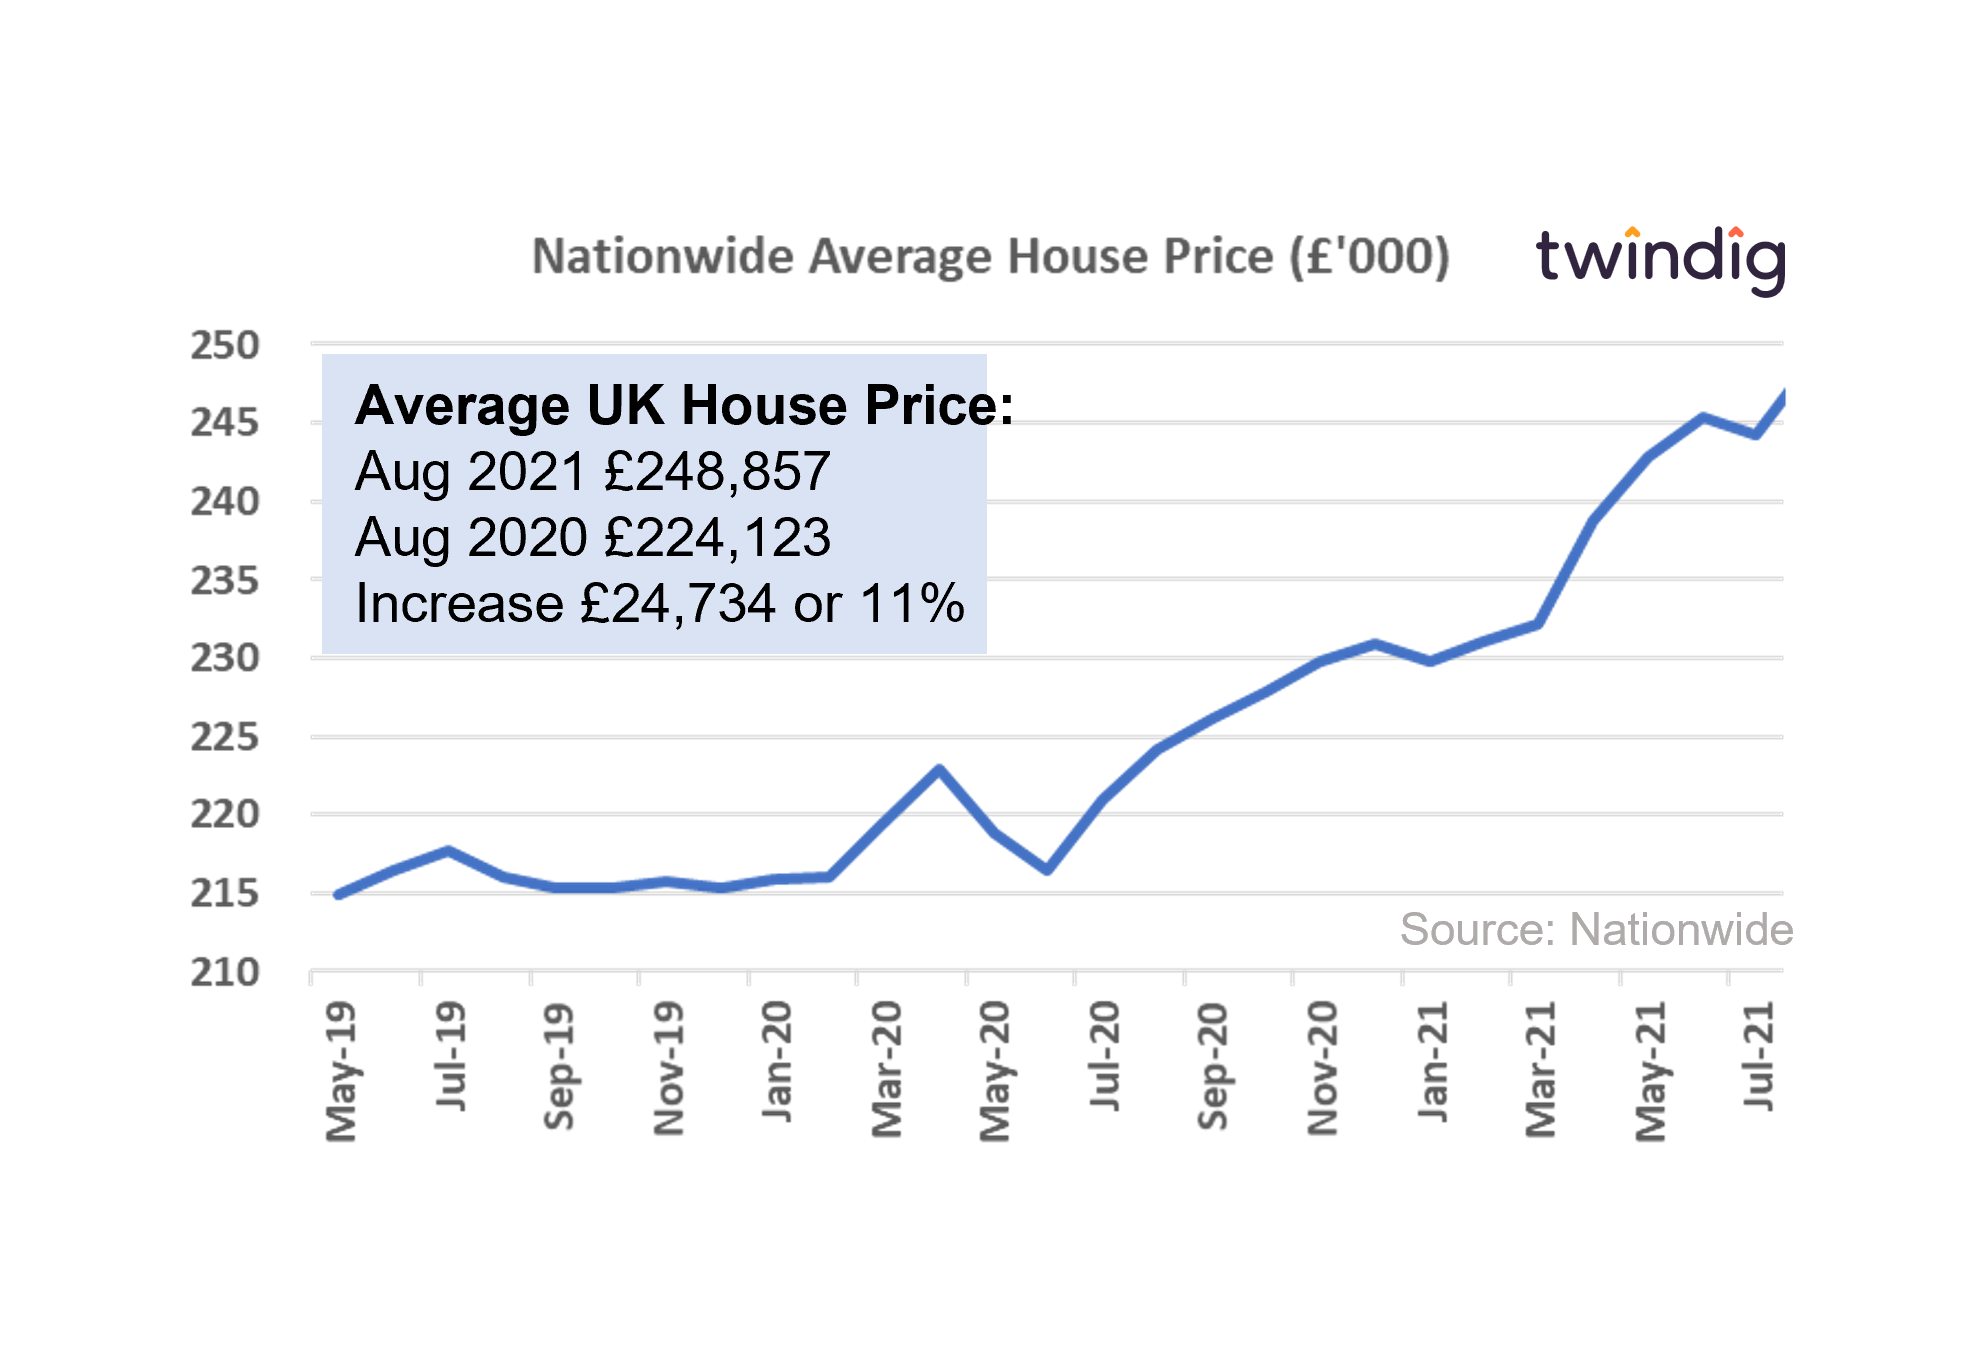 chart graph nationwide house price index August 2021 twindig anthony codling